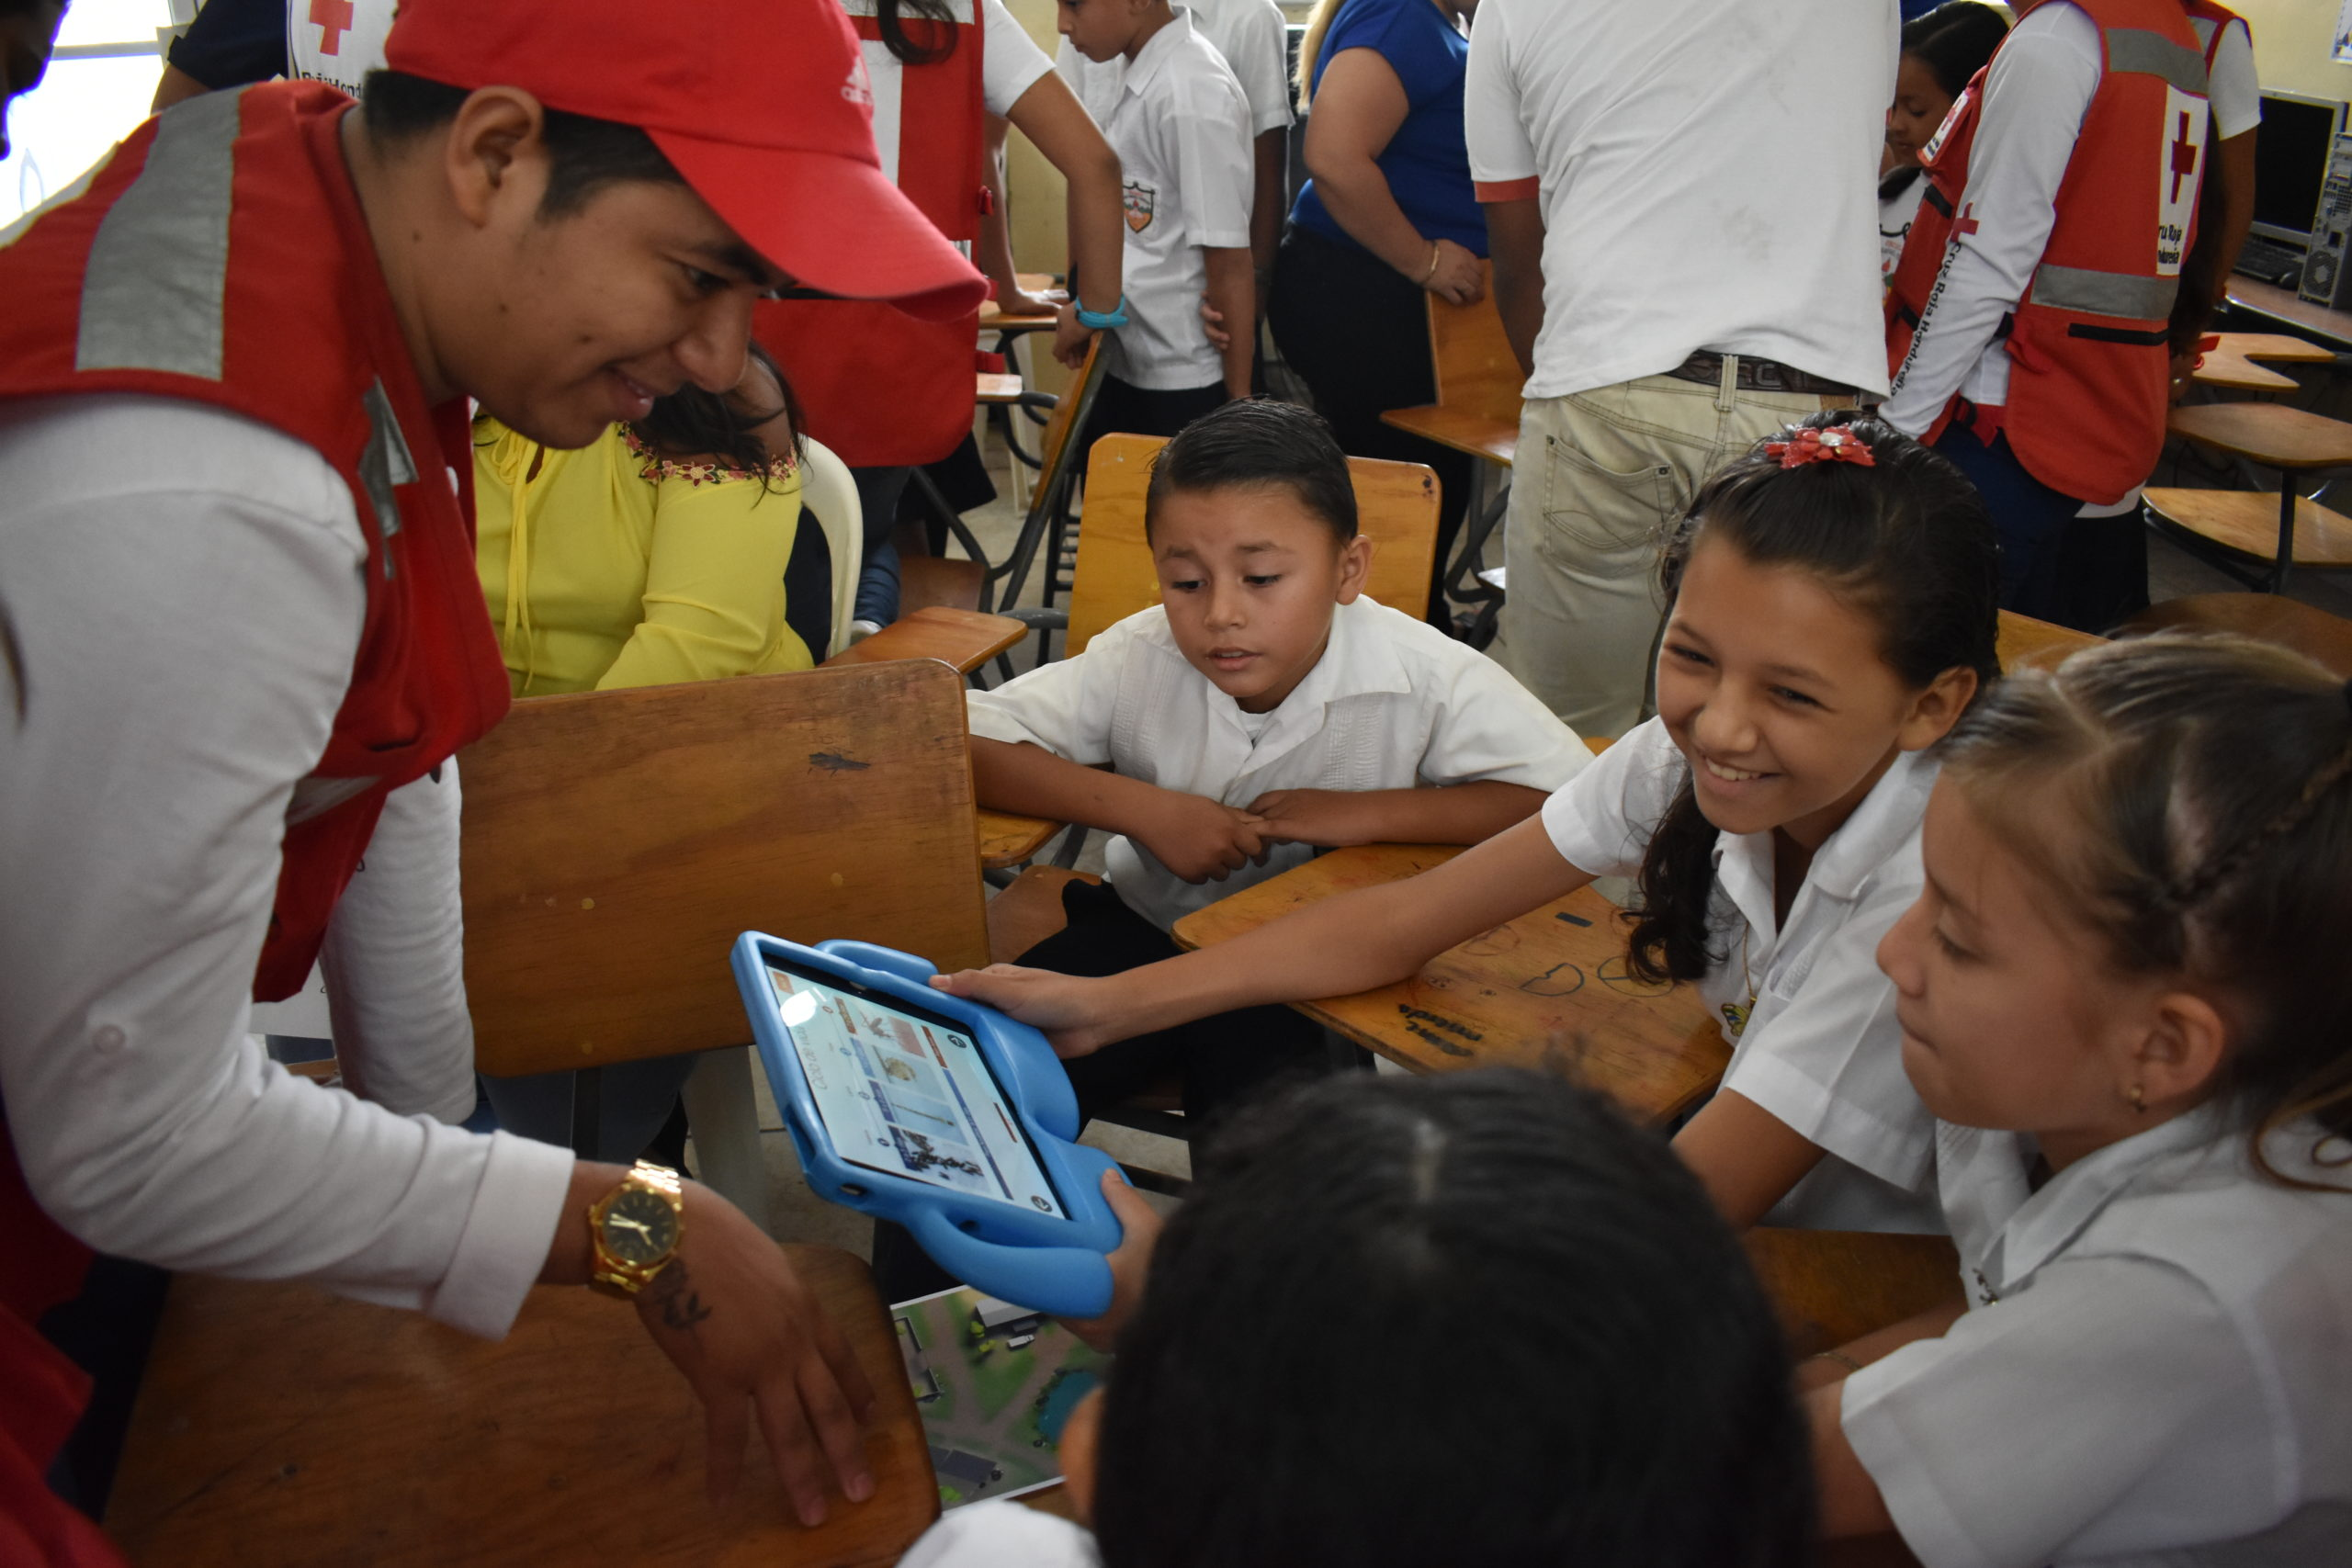 Zika AR experience shown in a school